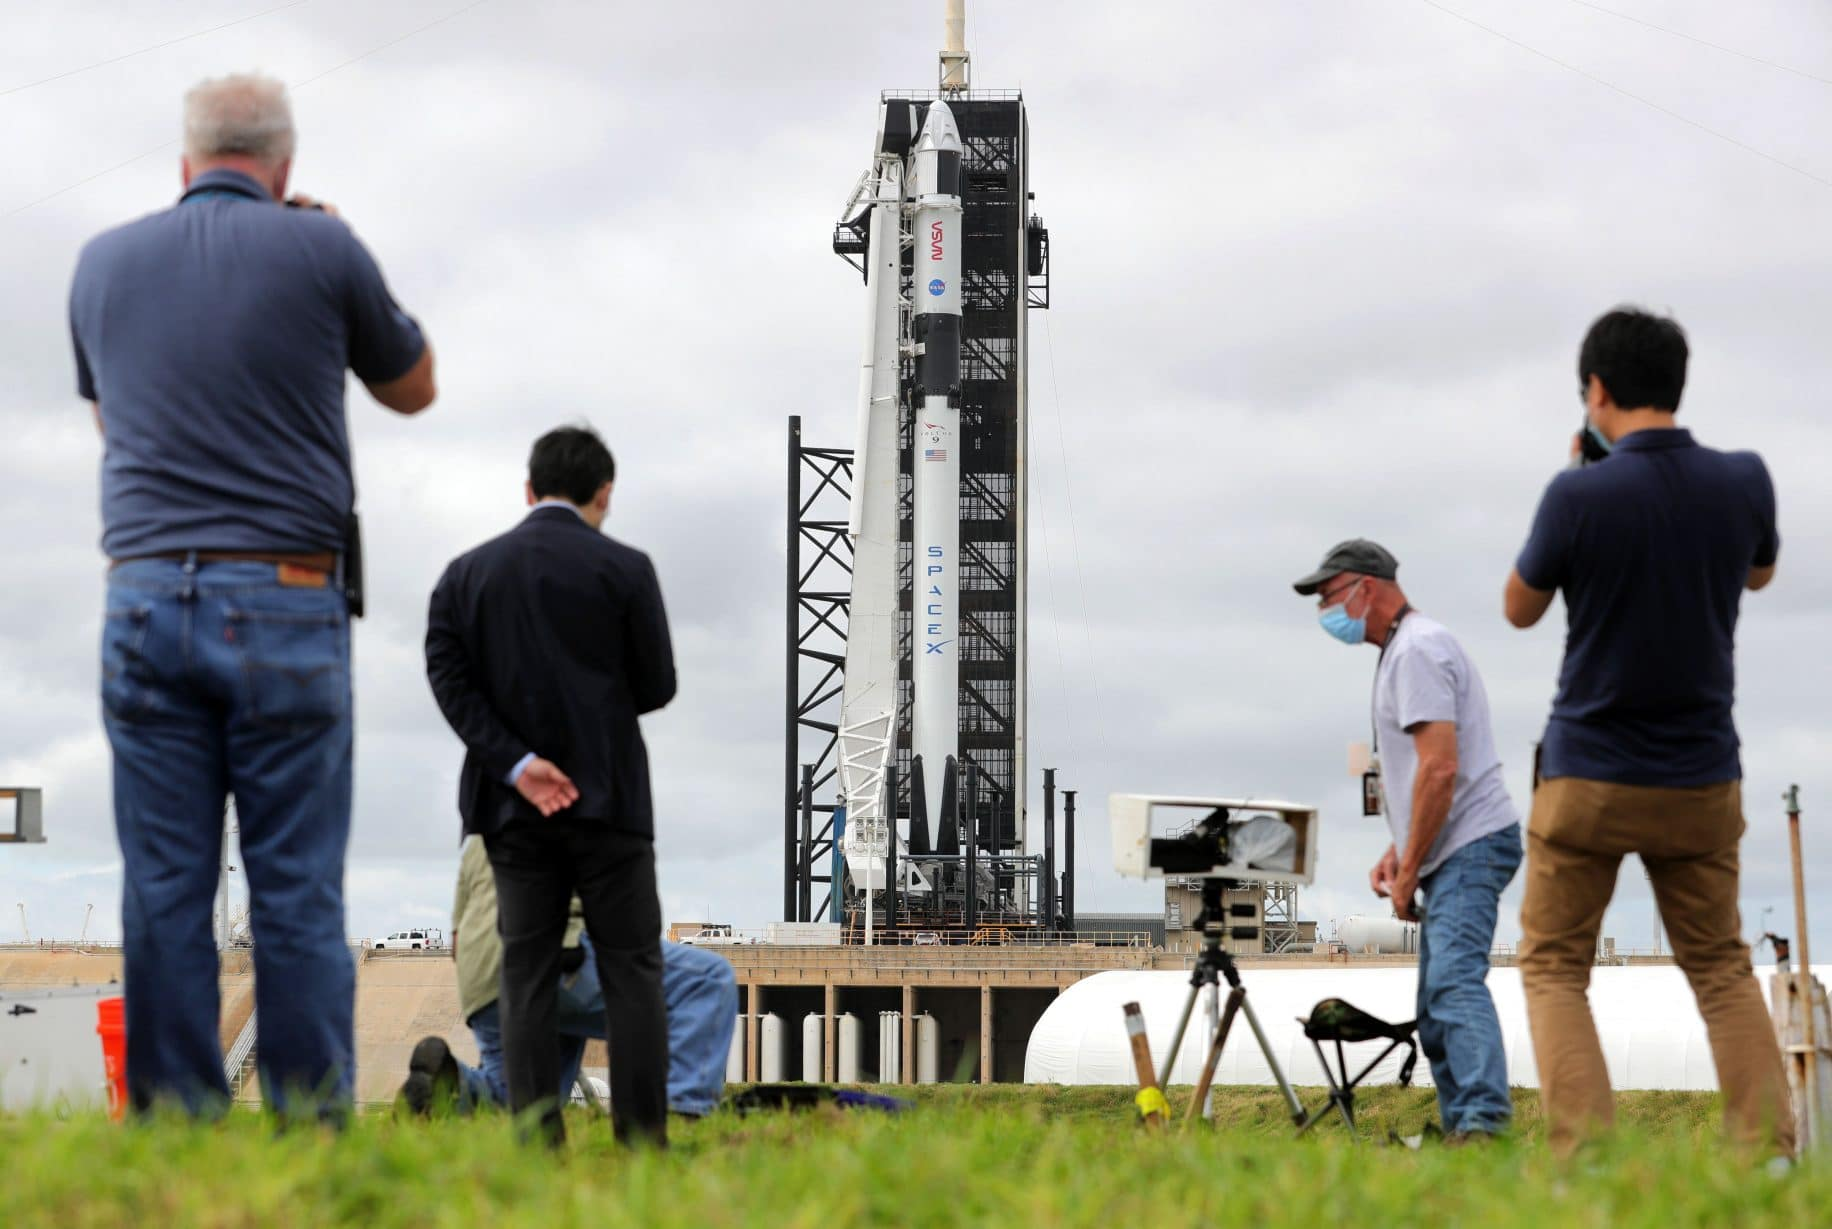 Next crew of astronauts set to launch Sunday from Florida in 'new era' of SpaceX human spaceflight